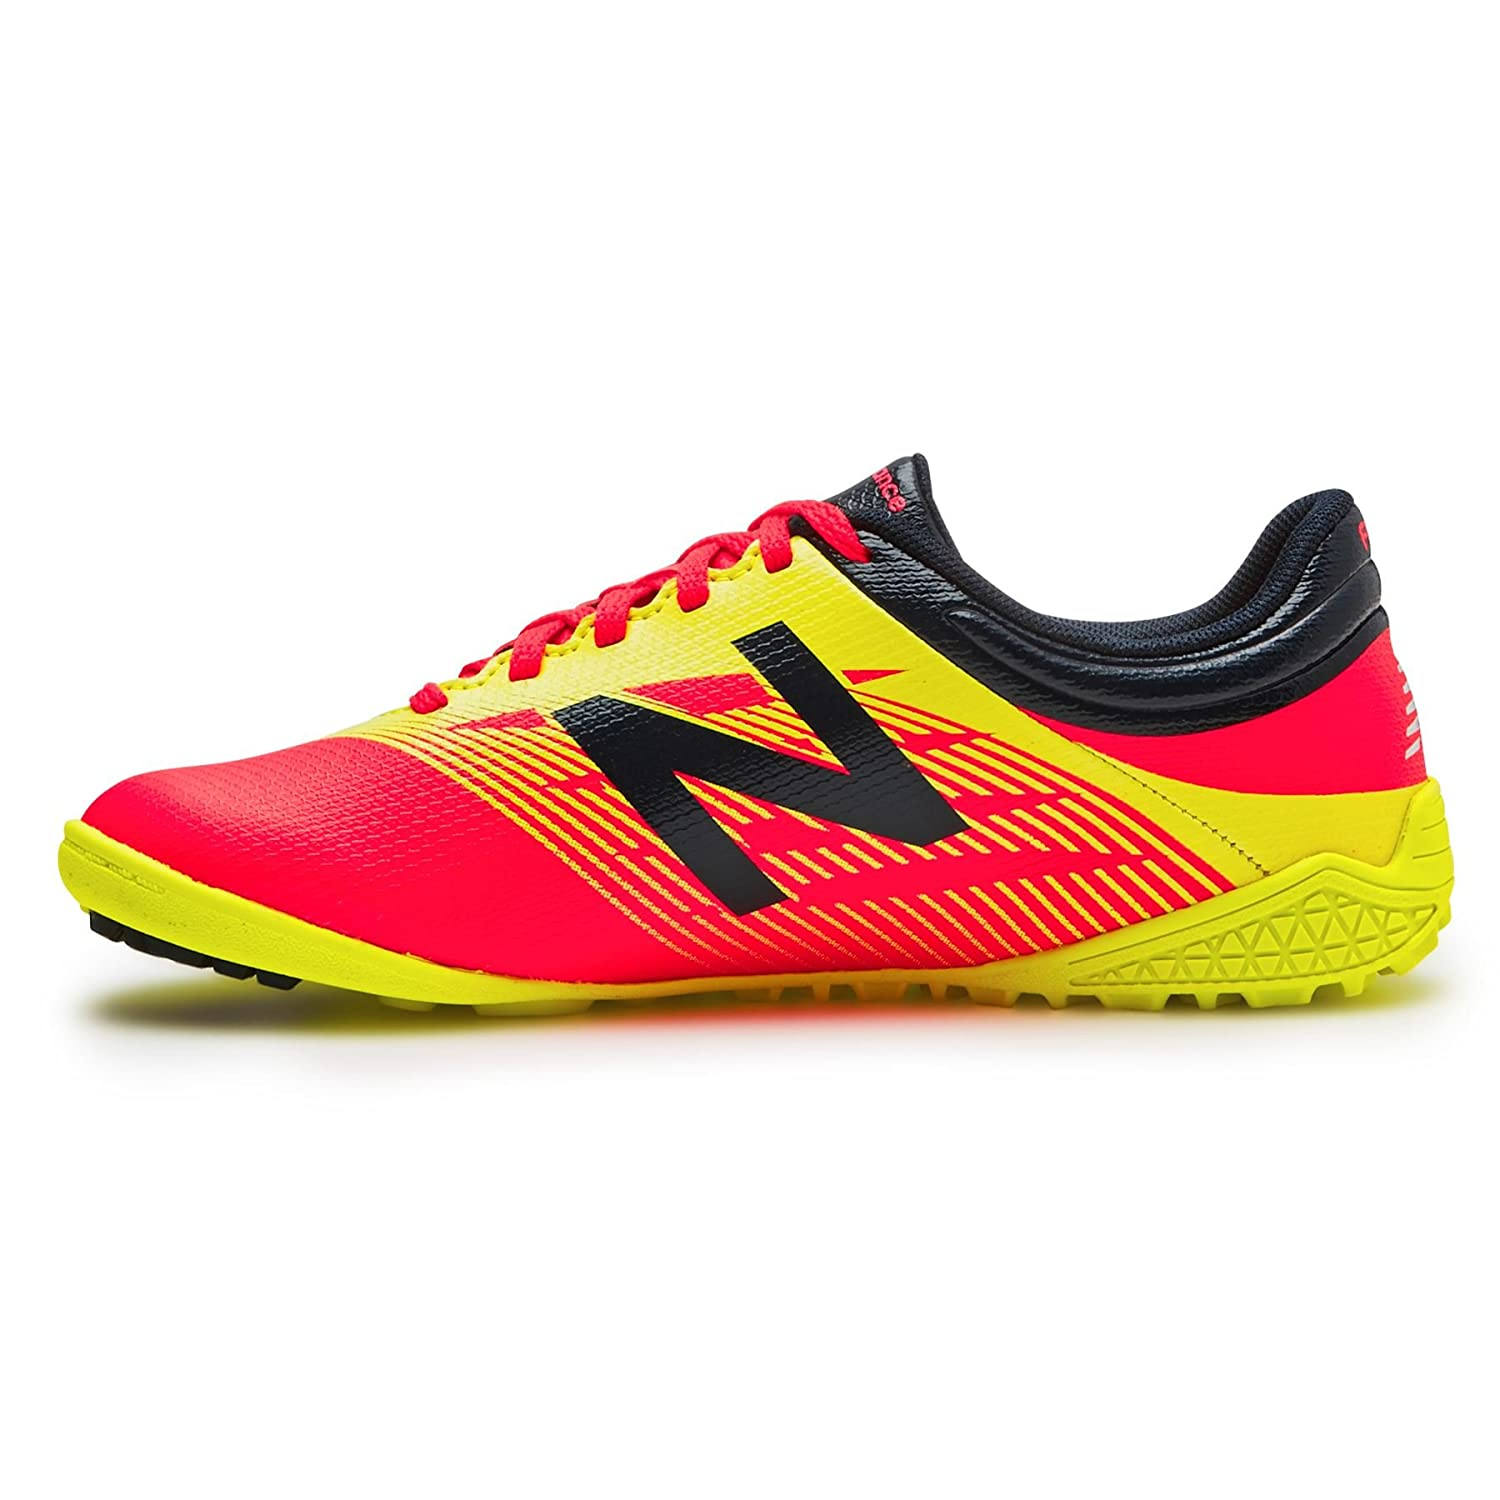 e5ff55c45fc85 New Balance Childrens Kids Football Soccer Furon 2.0 Dispatch Astro  Trainers - 3: Amazon.co.uk: Shoes & Bags